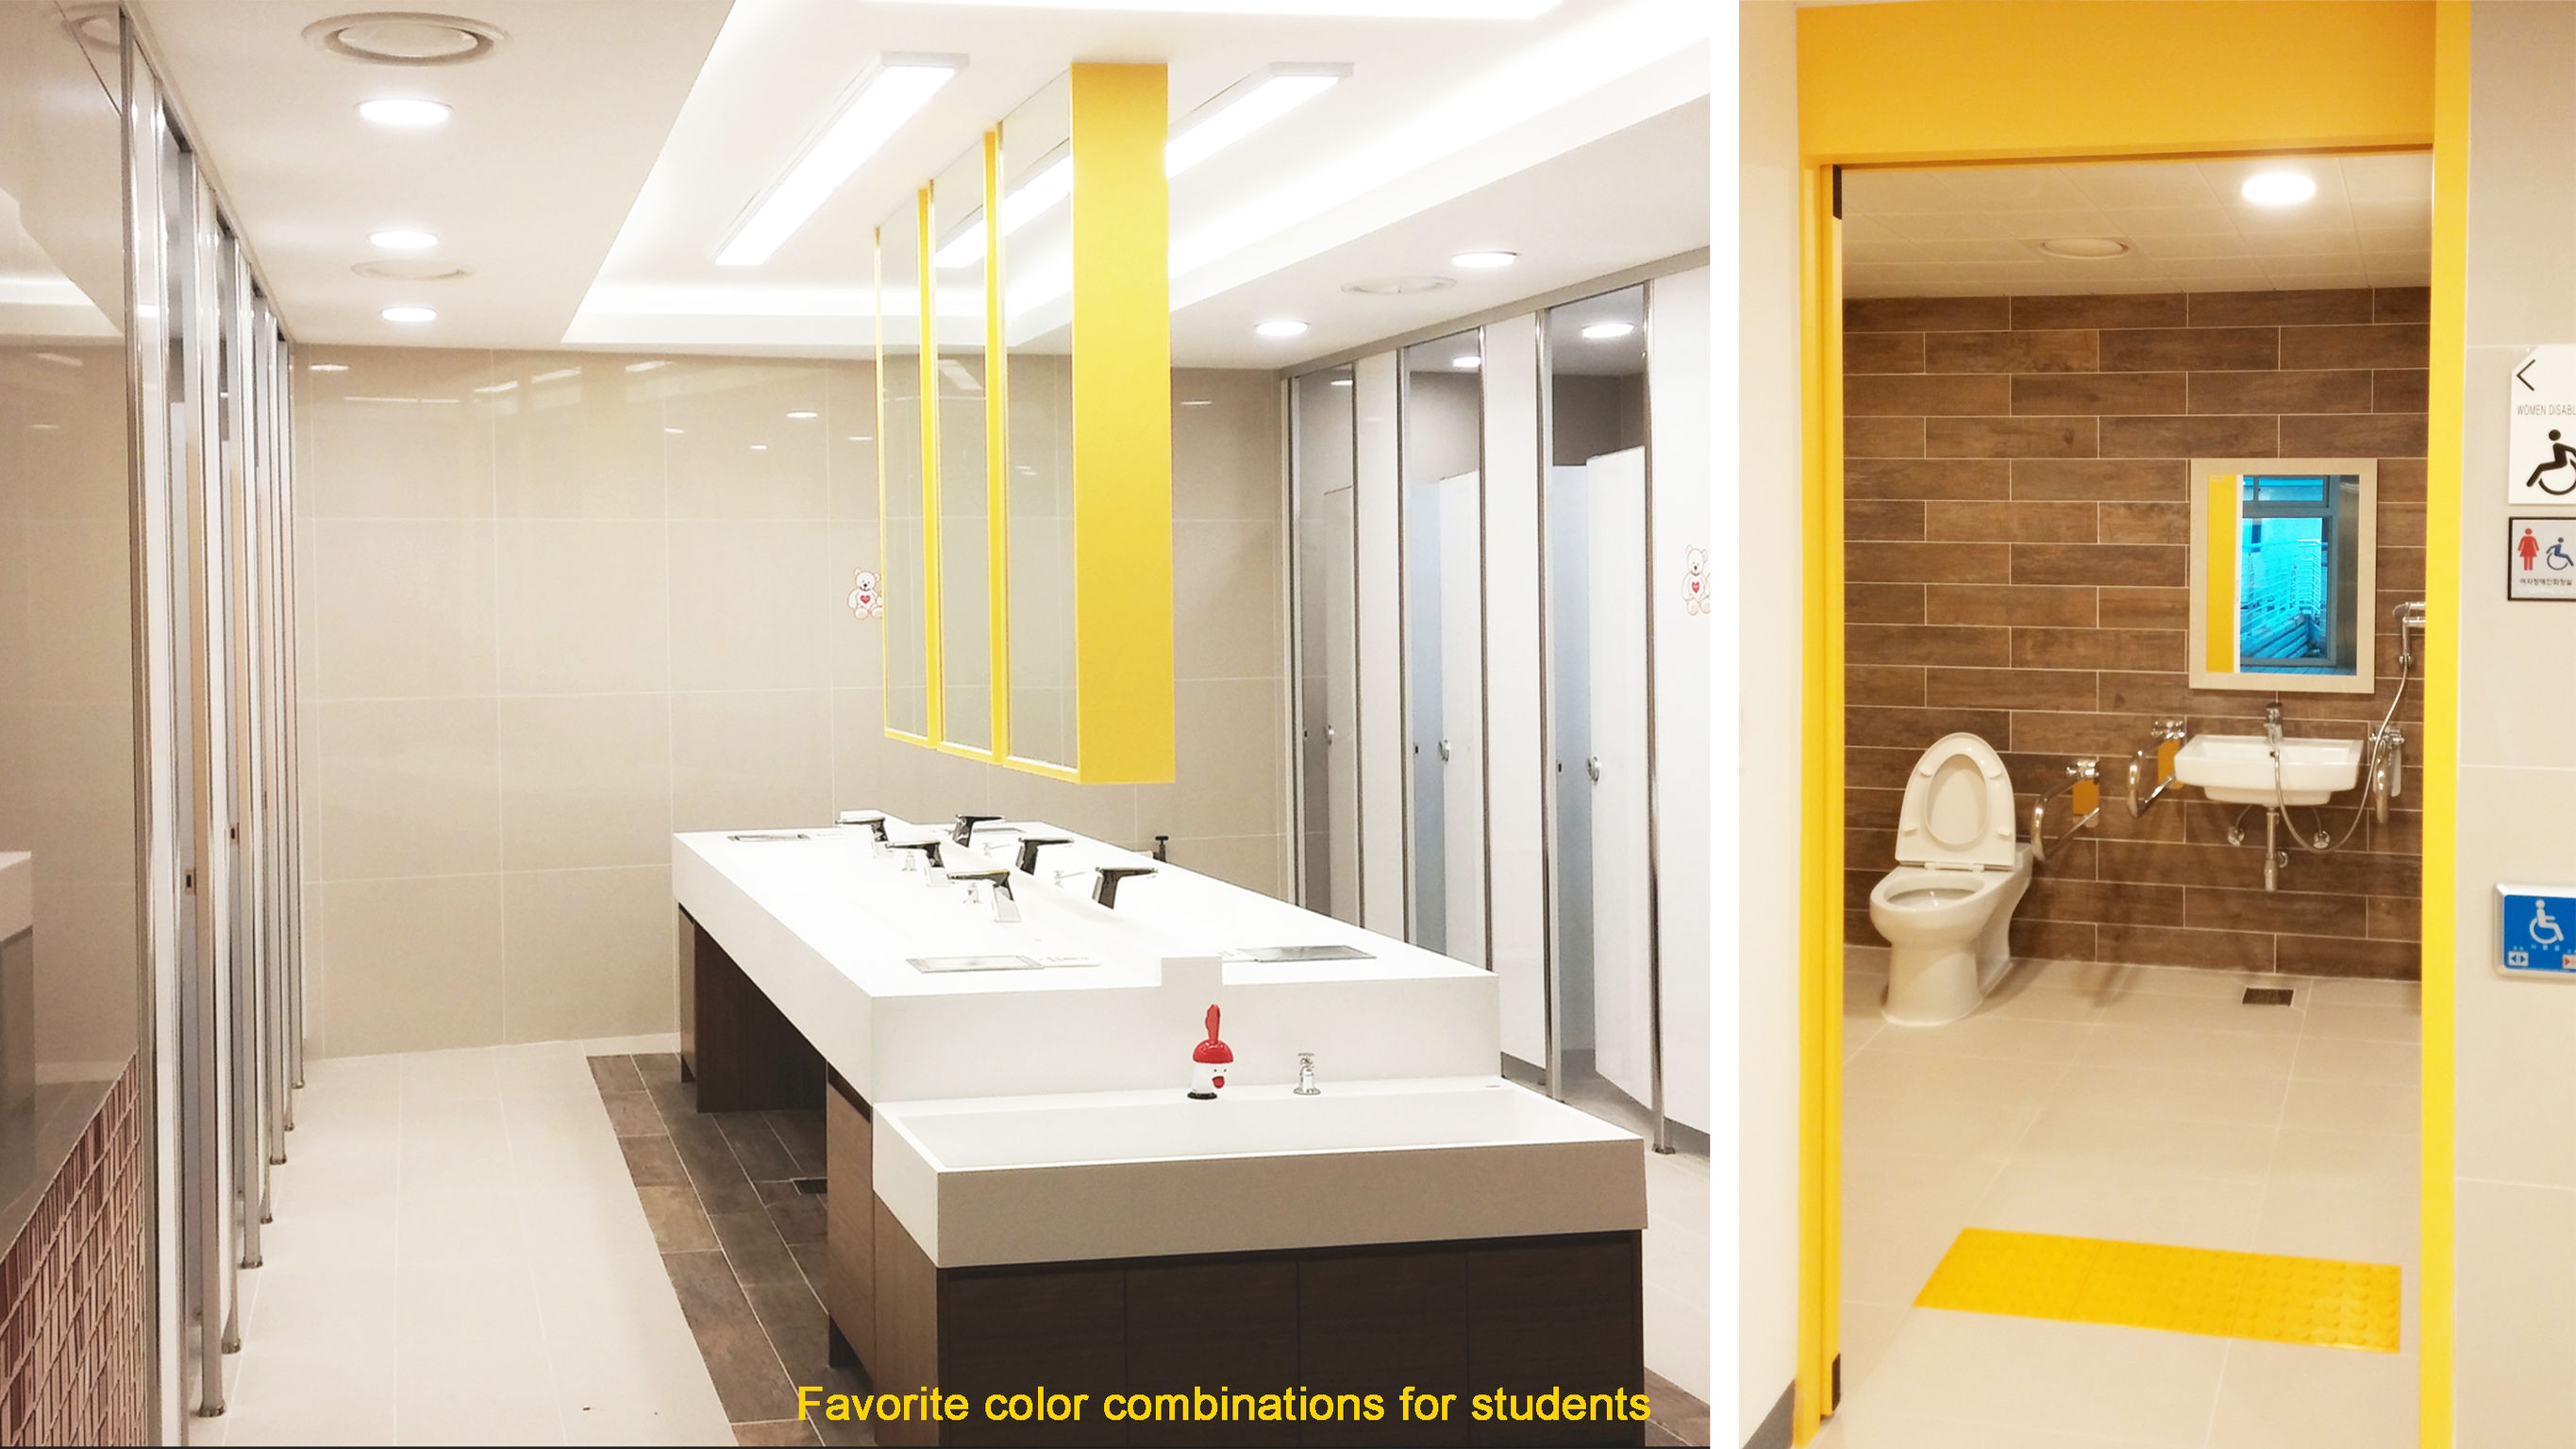 Miral School Design - Entry - iF WORLD DESIGN GUIDE